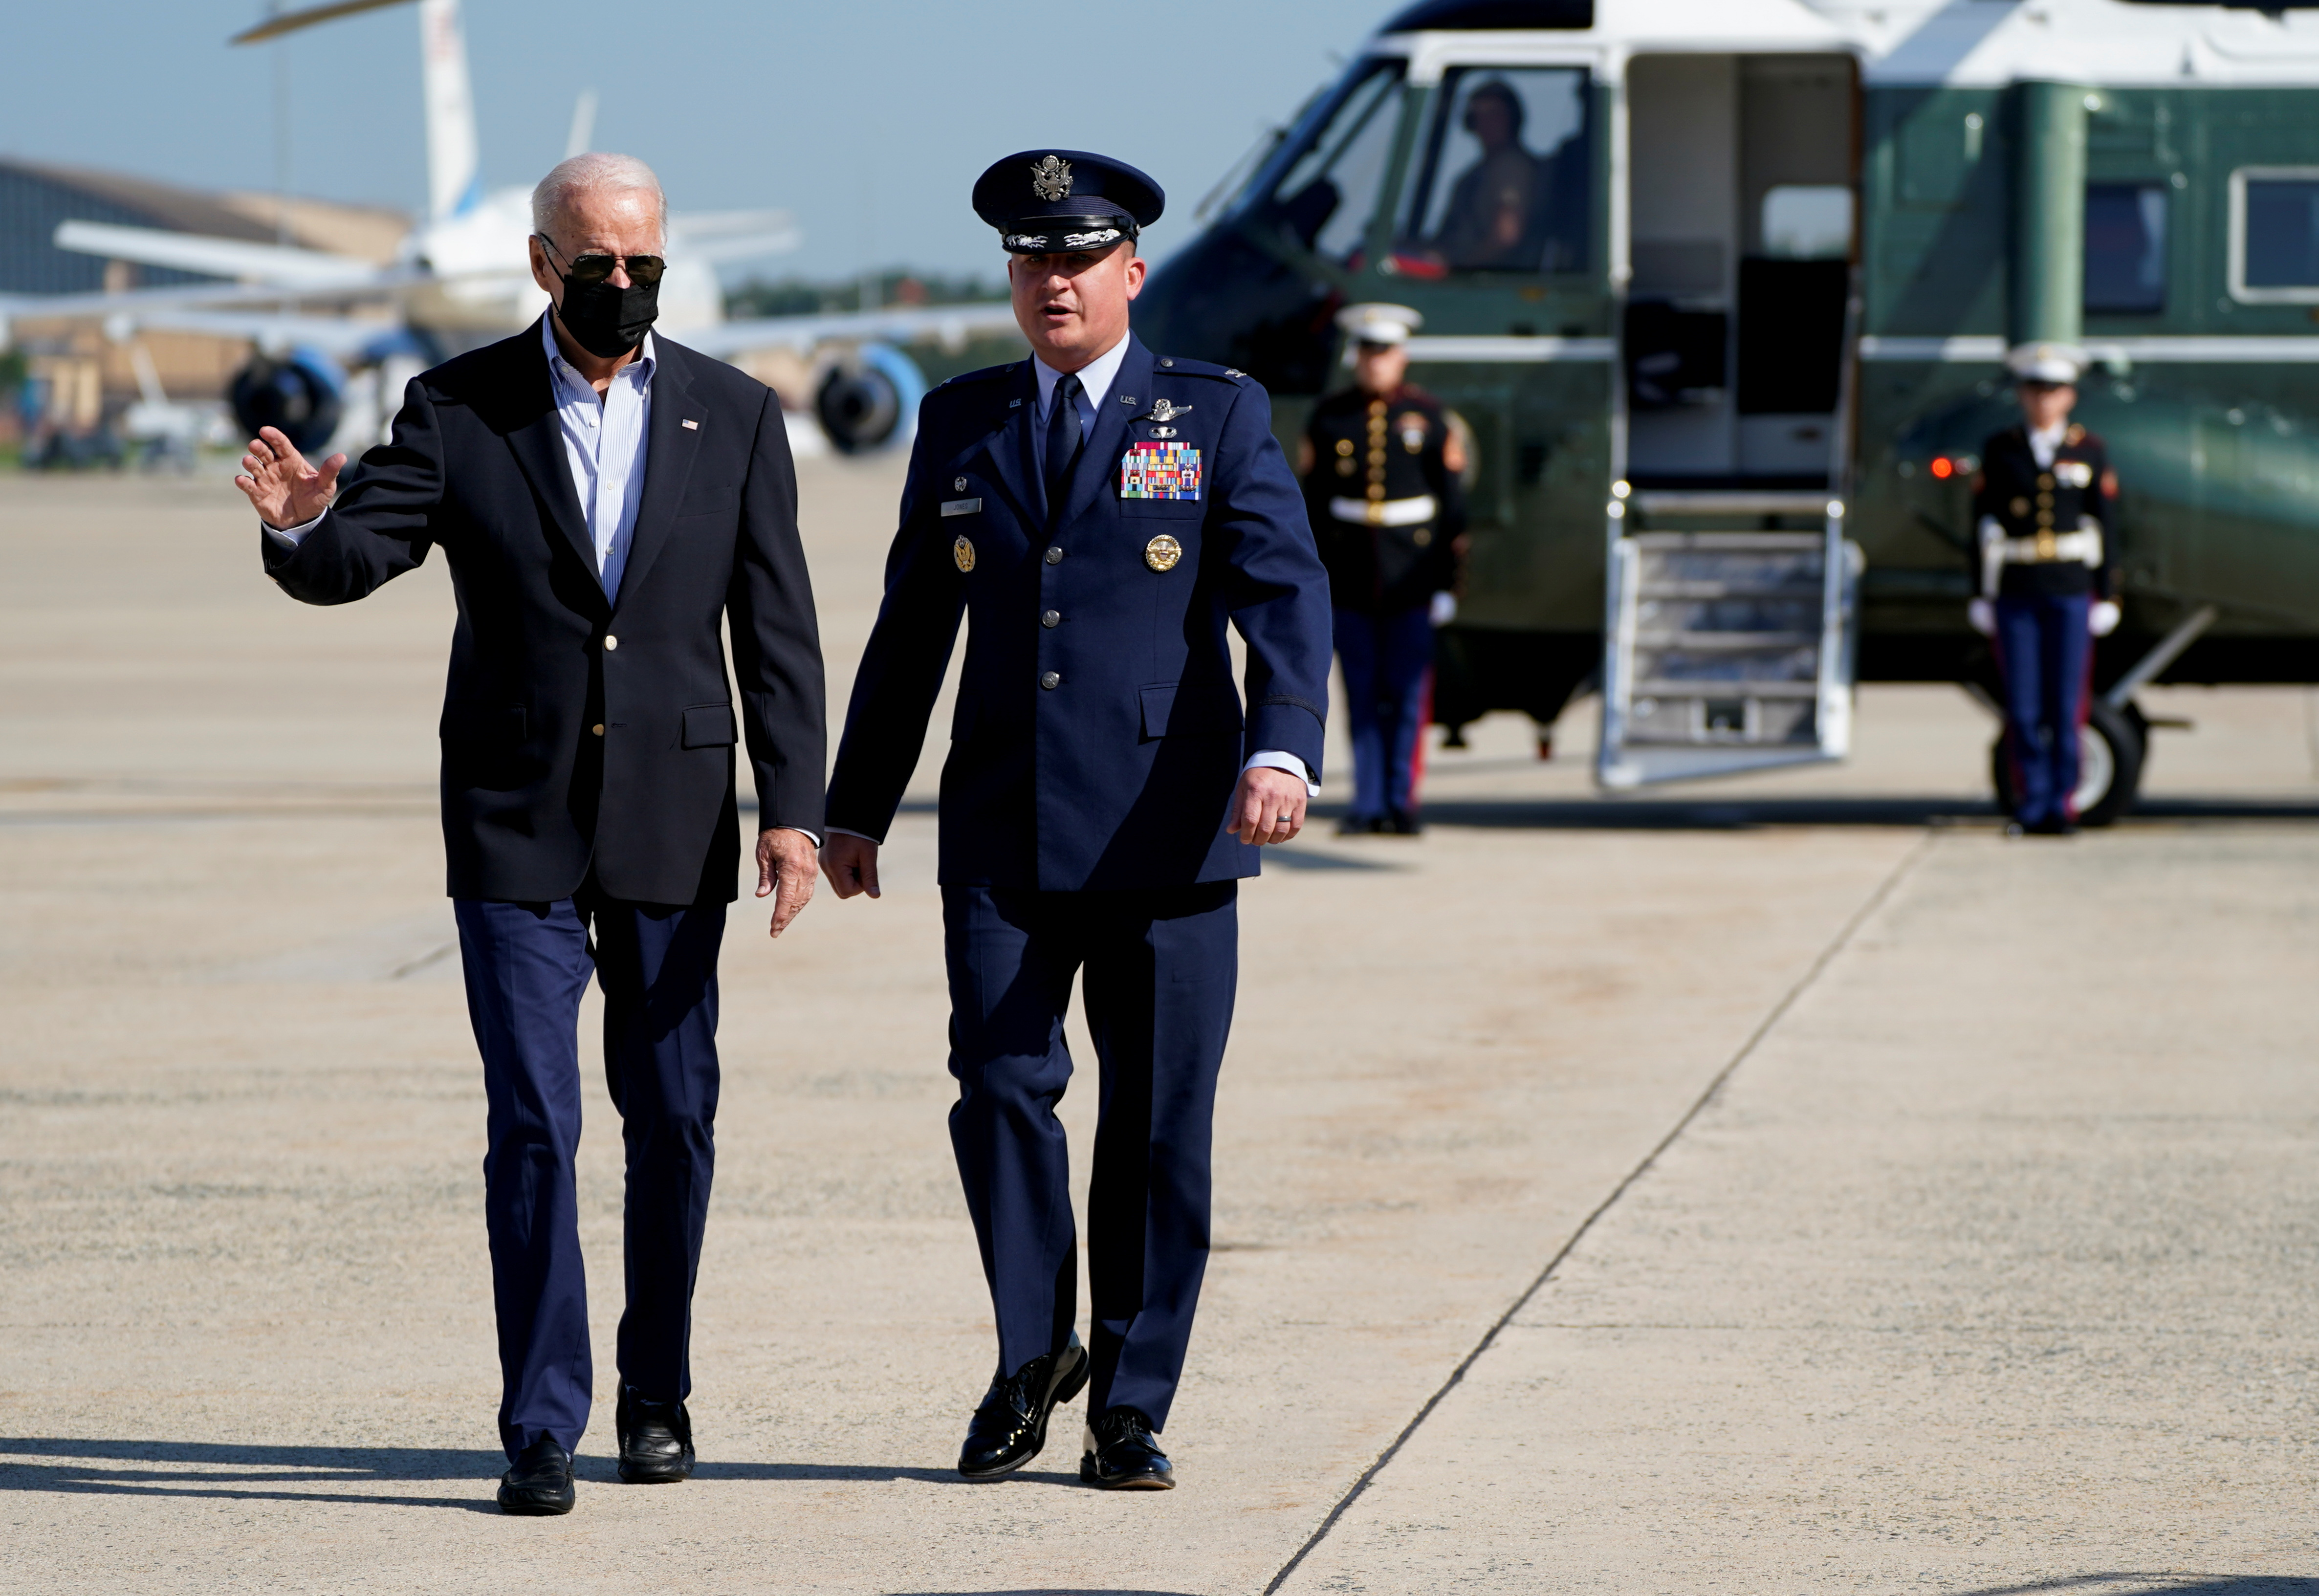 U.S. President Joe Biden walks on the tarmac with Col. Matthew E. Jones, Commander of the 89th Airlift Wing, before departing to visit New York and New Jersey to tour the hurricane-affected areas, from Joint Base Andrews, Maryland, U.S. September 7, 2021. REUTERS/Elizabeth Frantz